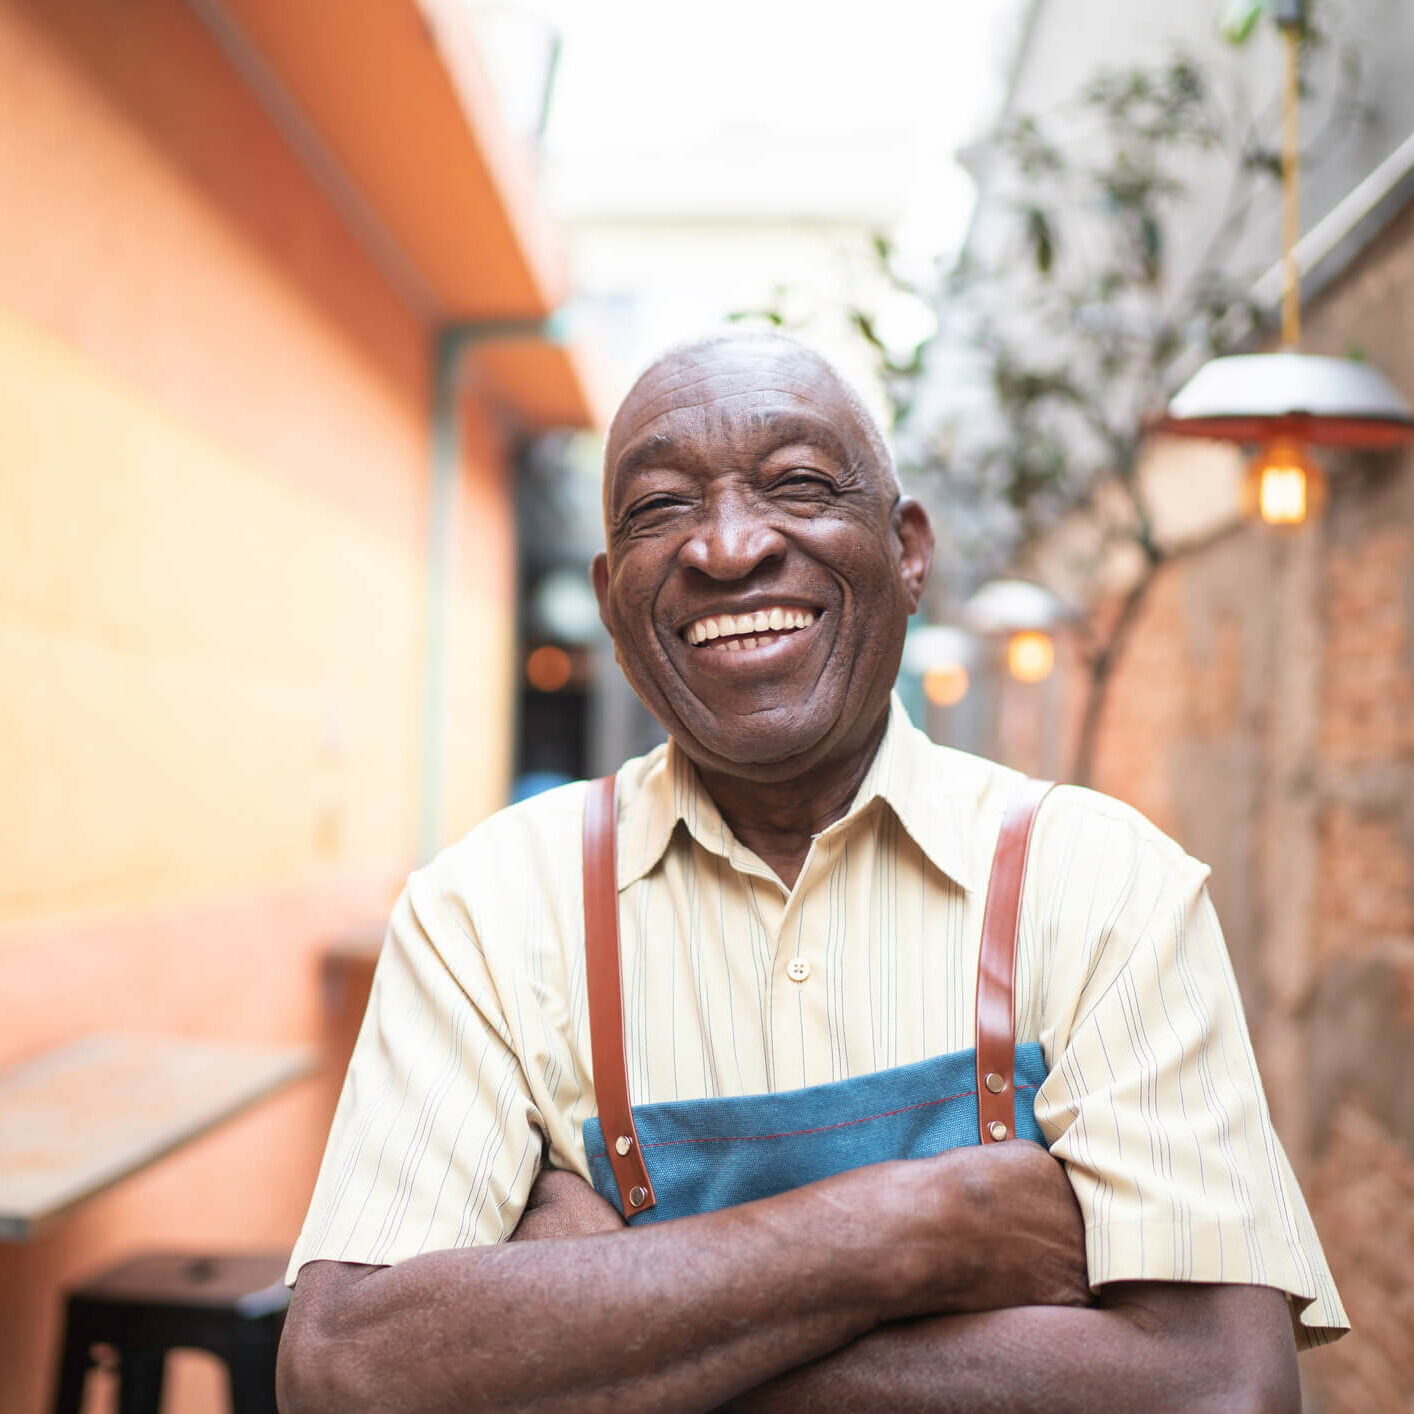 Smiling Business Owner - over 50 or owners of color